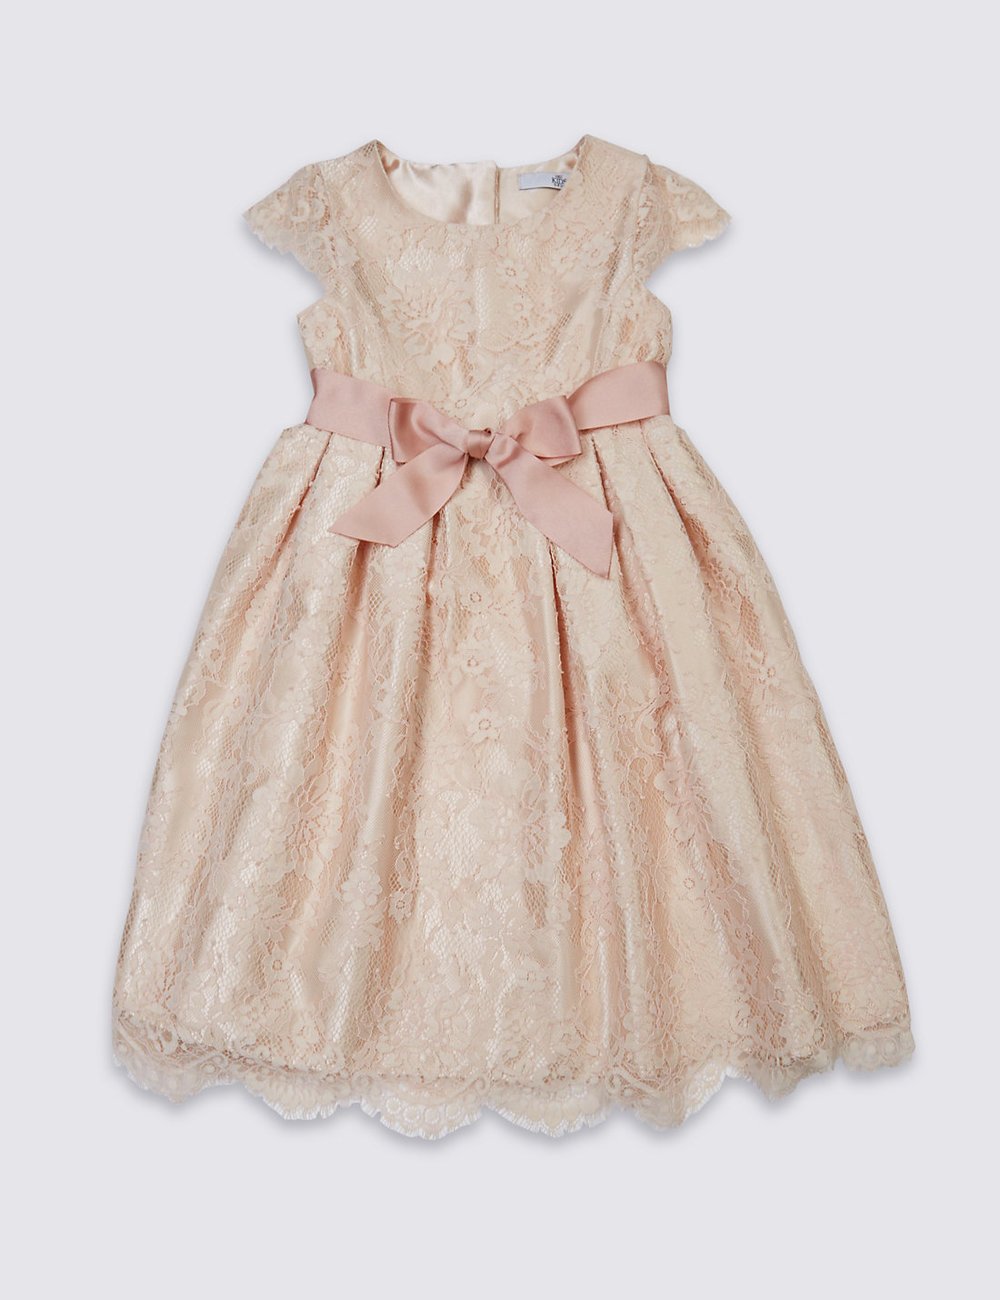 Lace Front Bow Dress at M&S